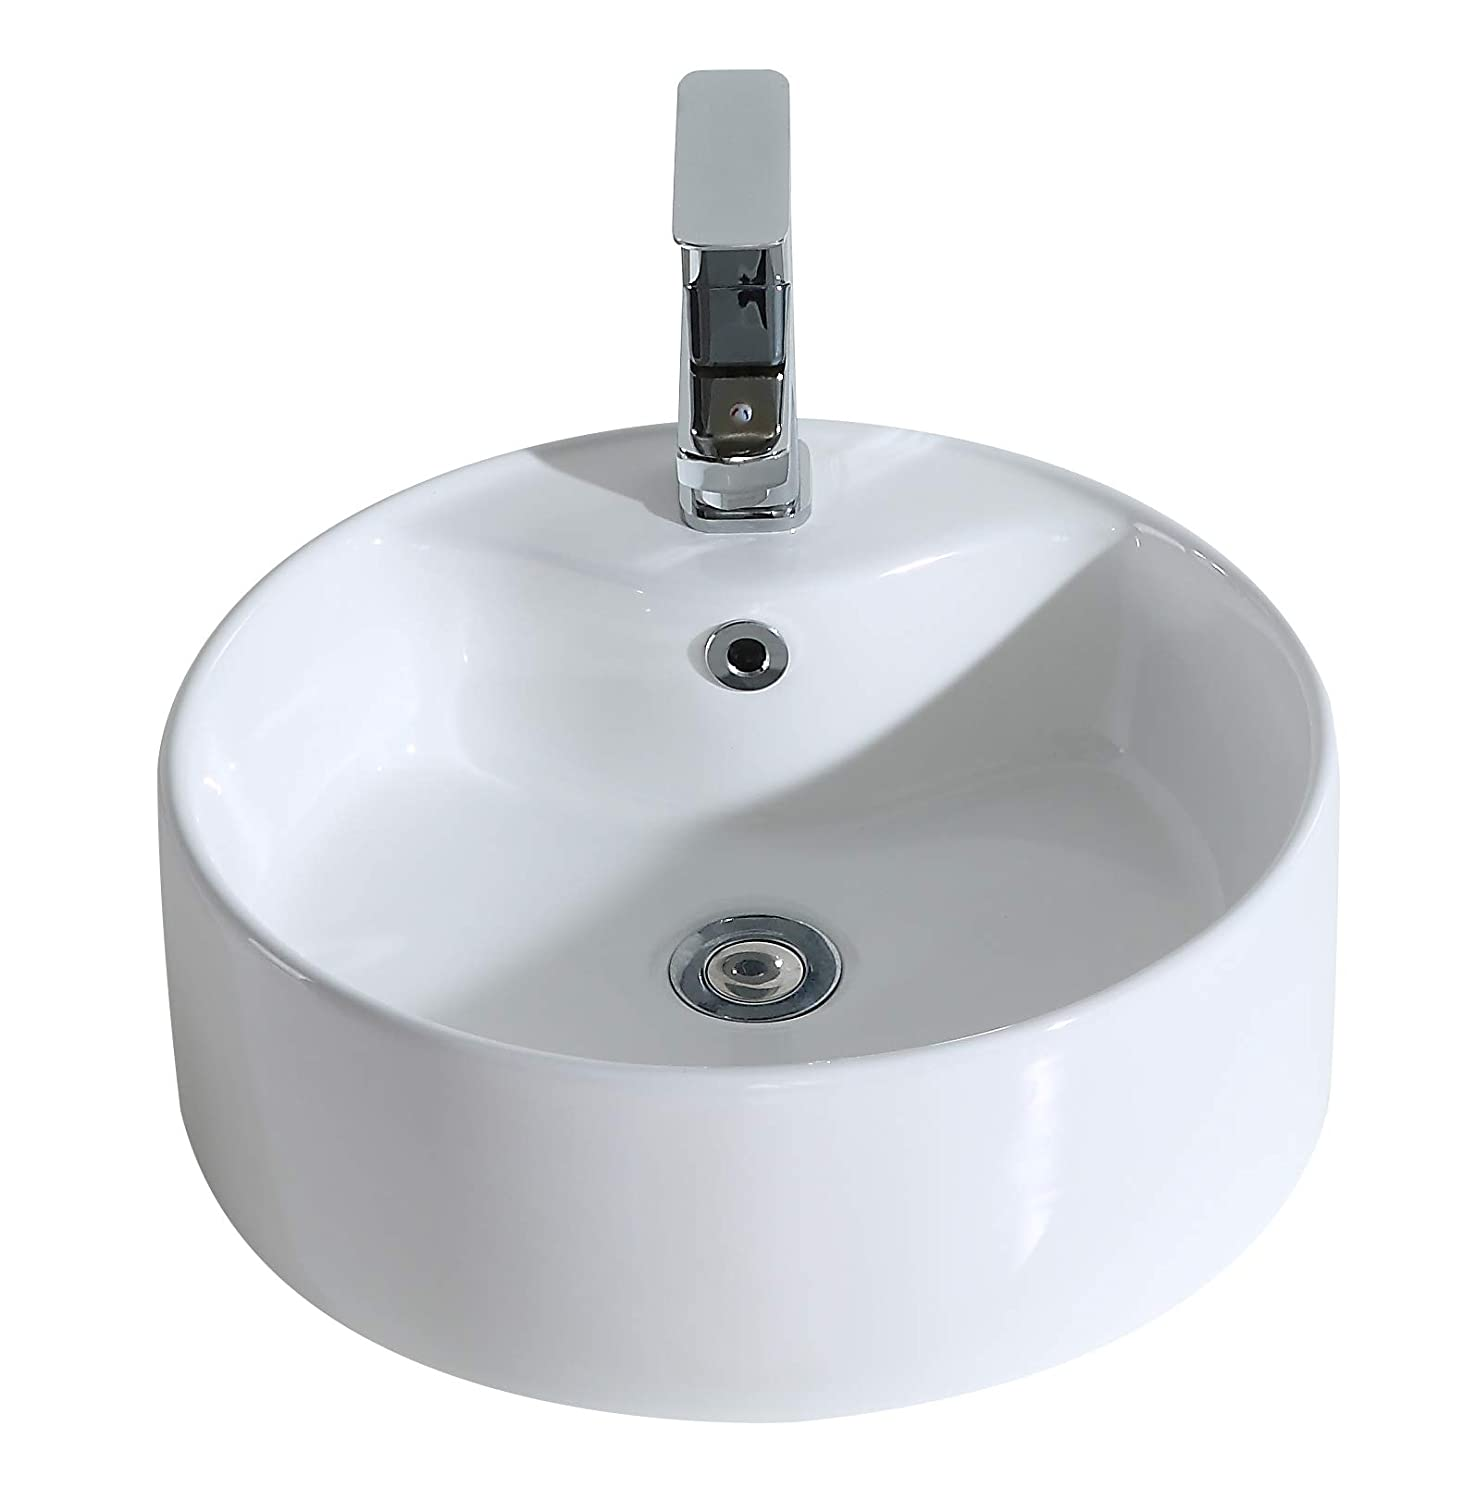 ERIDANUS Vessel Sink, Series Scott-A, Ceramic Wash Basin Sink with [Smooth Finish] Countertop Mounted [Easy Installation] for Lavatory Vanity Cabinet, 41 X 41 X 15CM